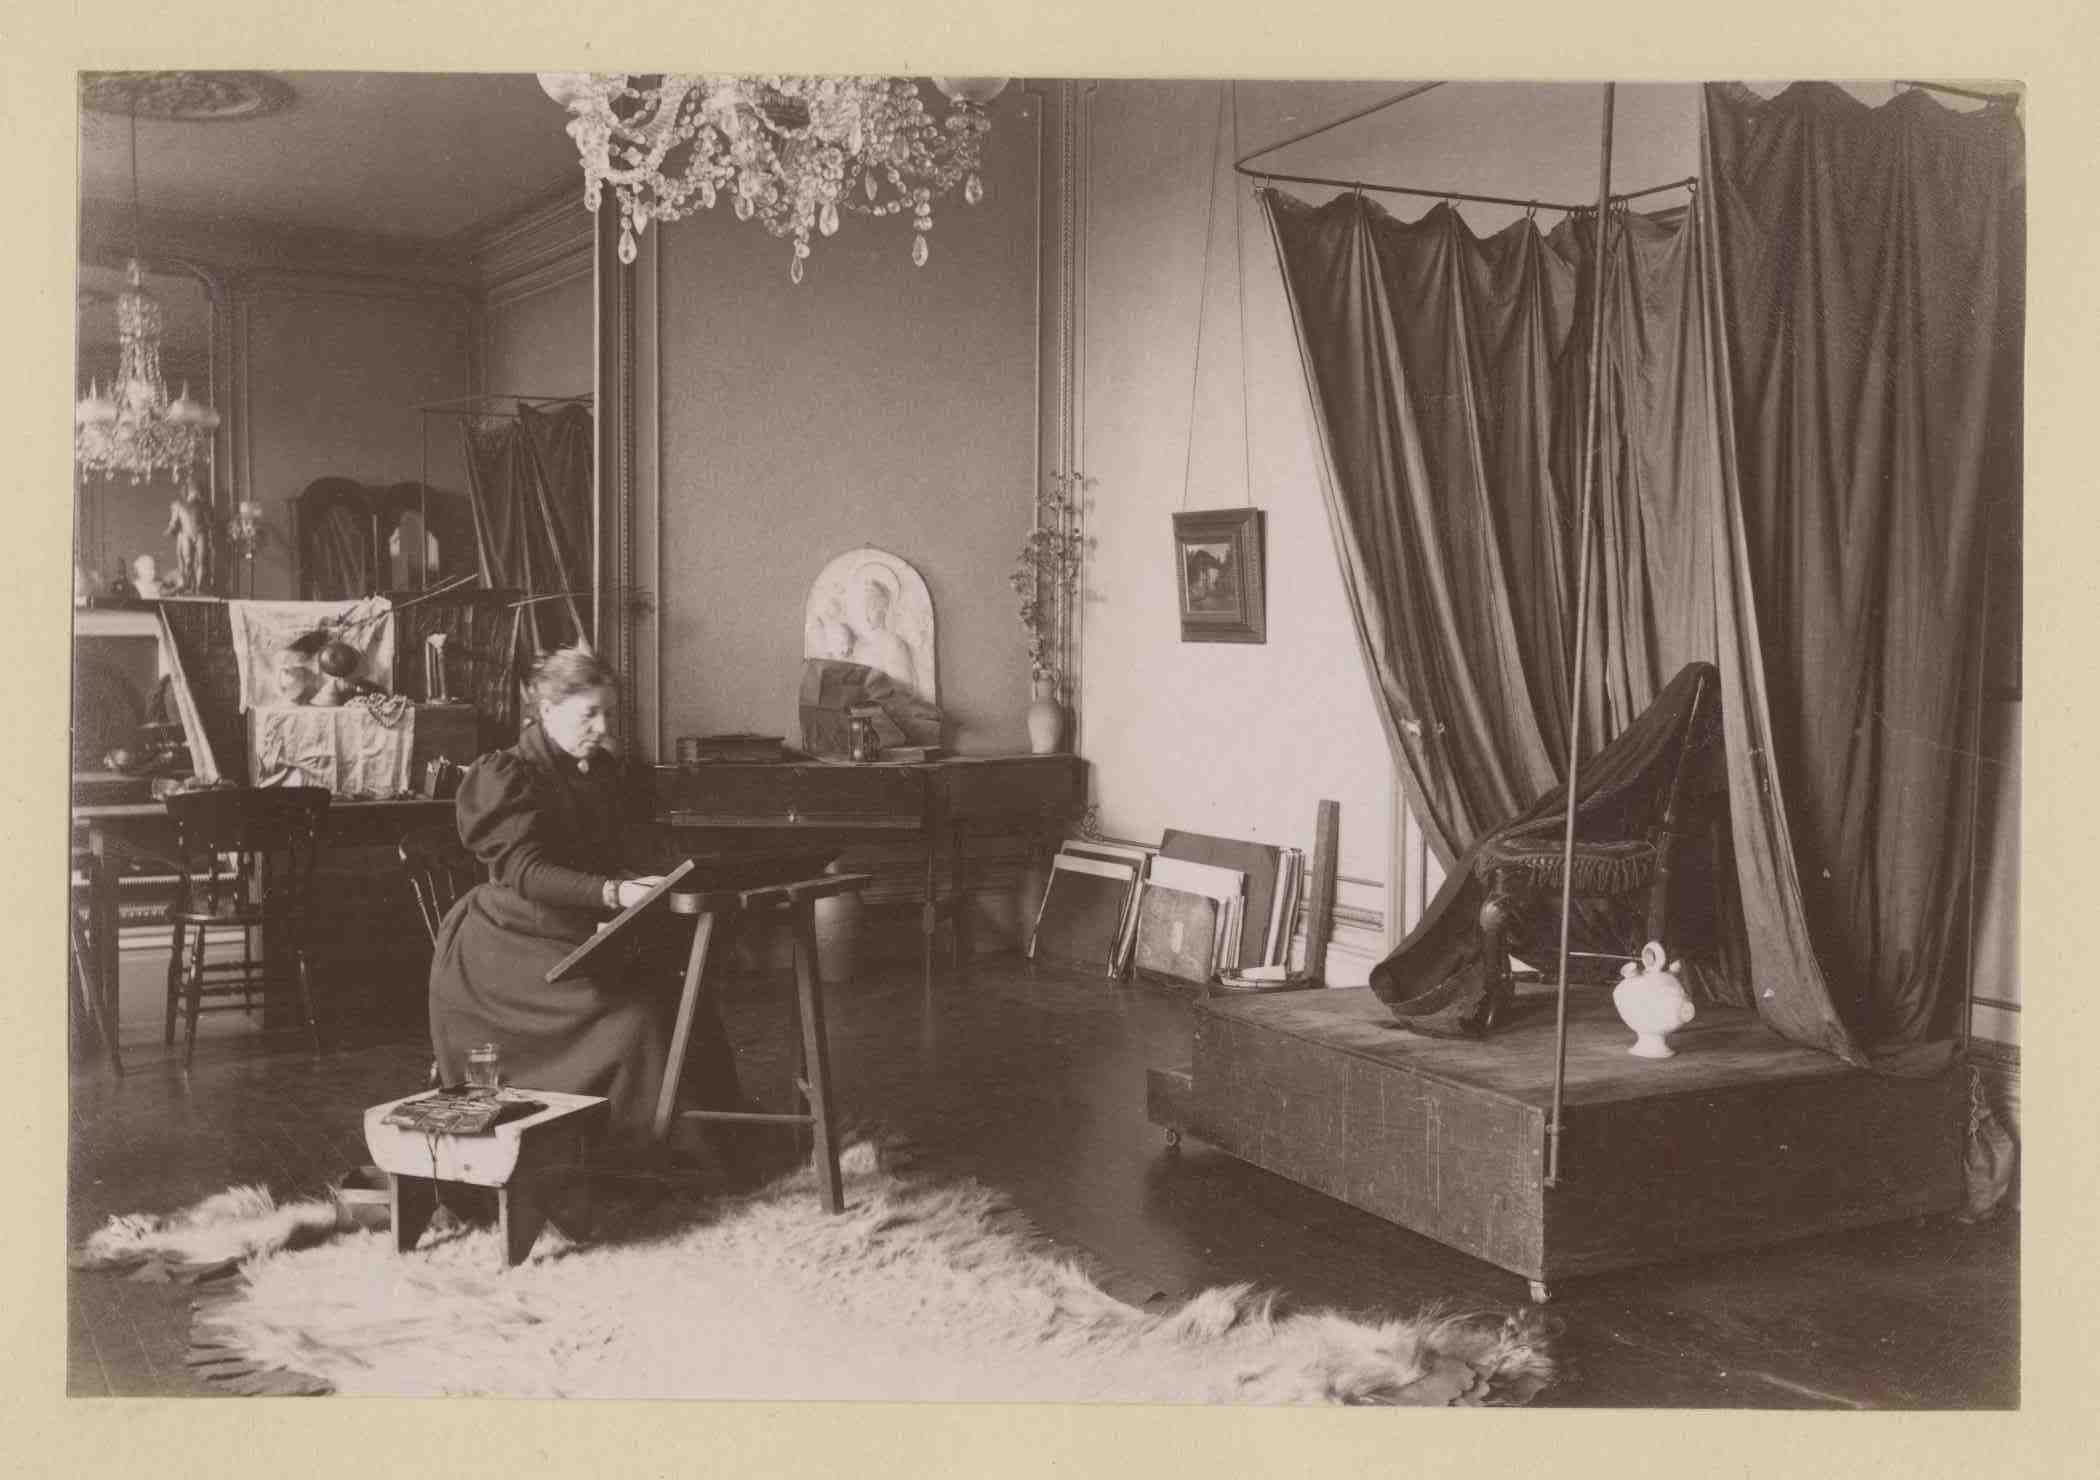 Lauriston photograph album – artist's studio with man reclining on a travelling couch